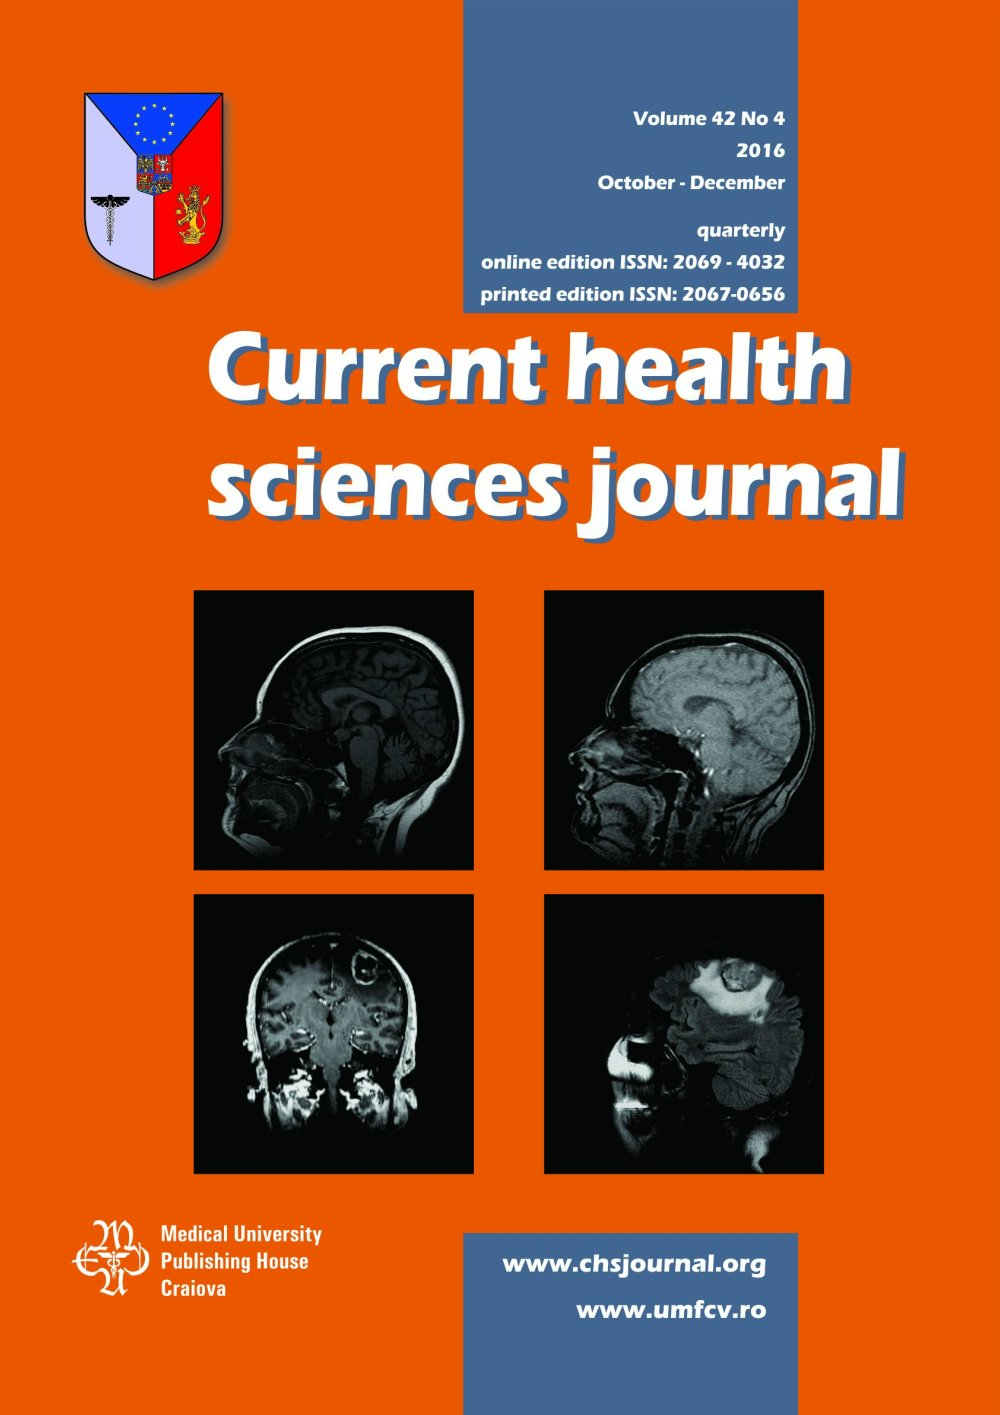 Current Health Sciences Journal, vol. 42 no. 4, 2016